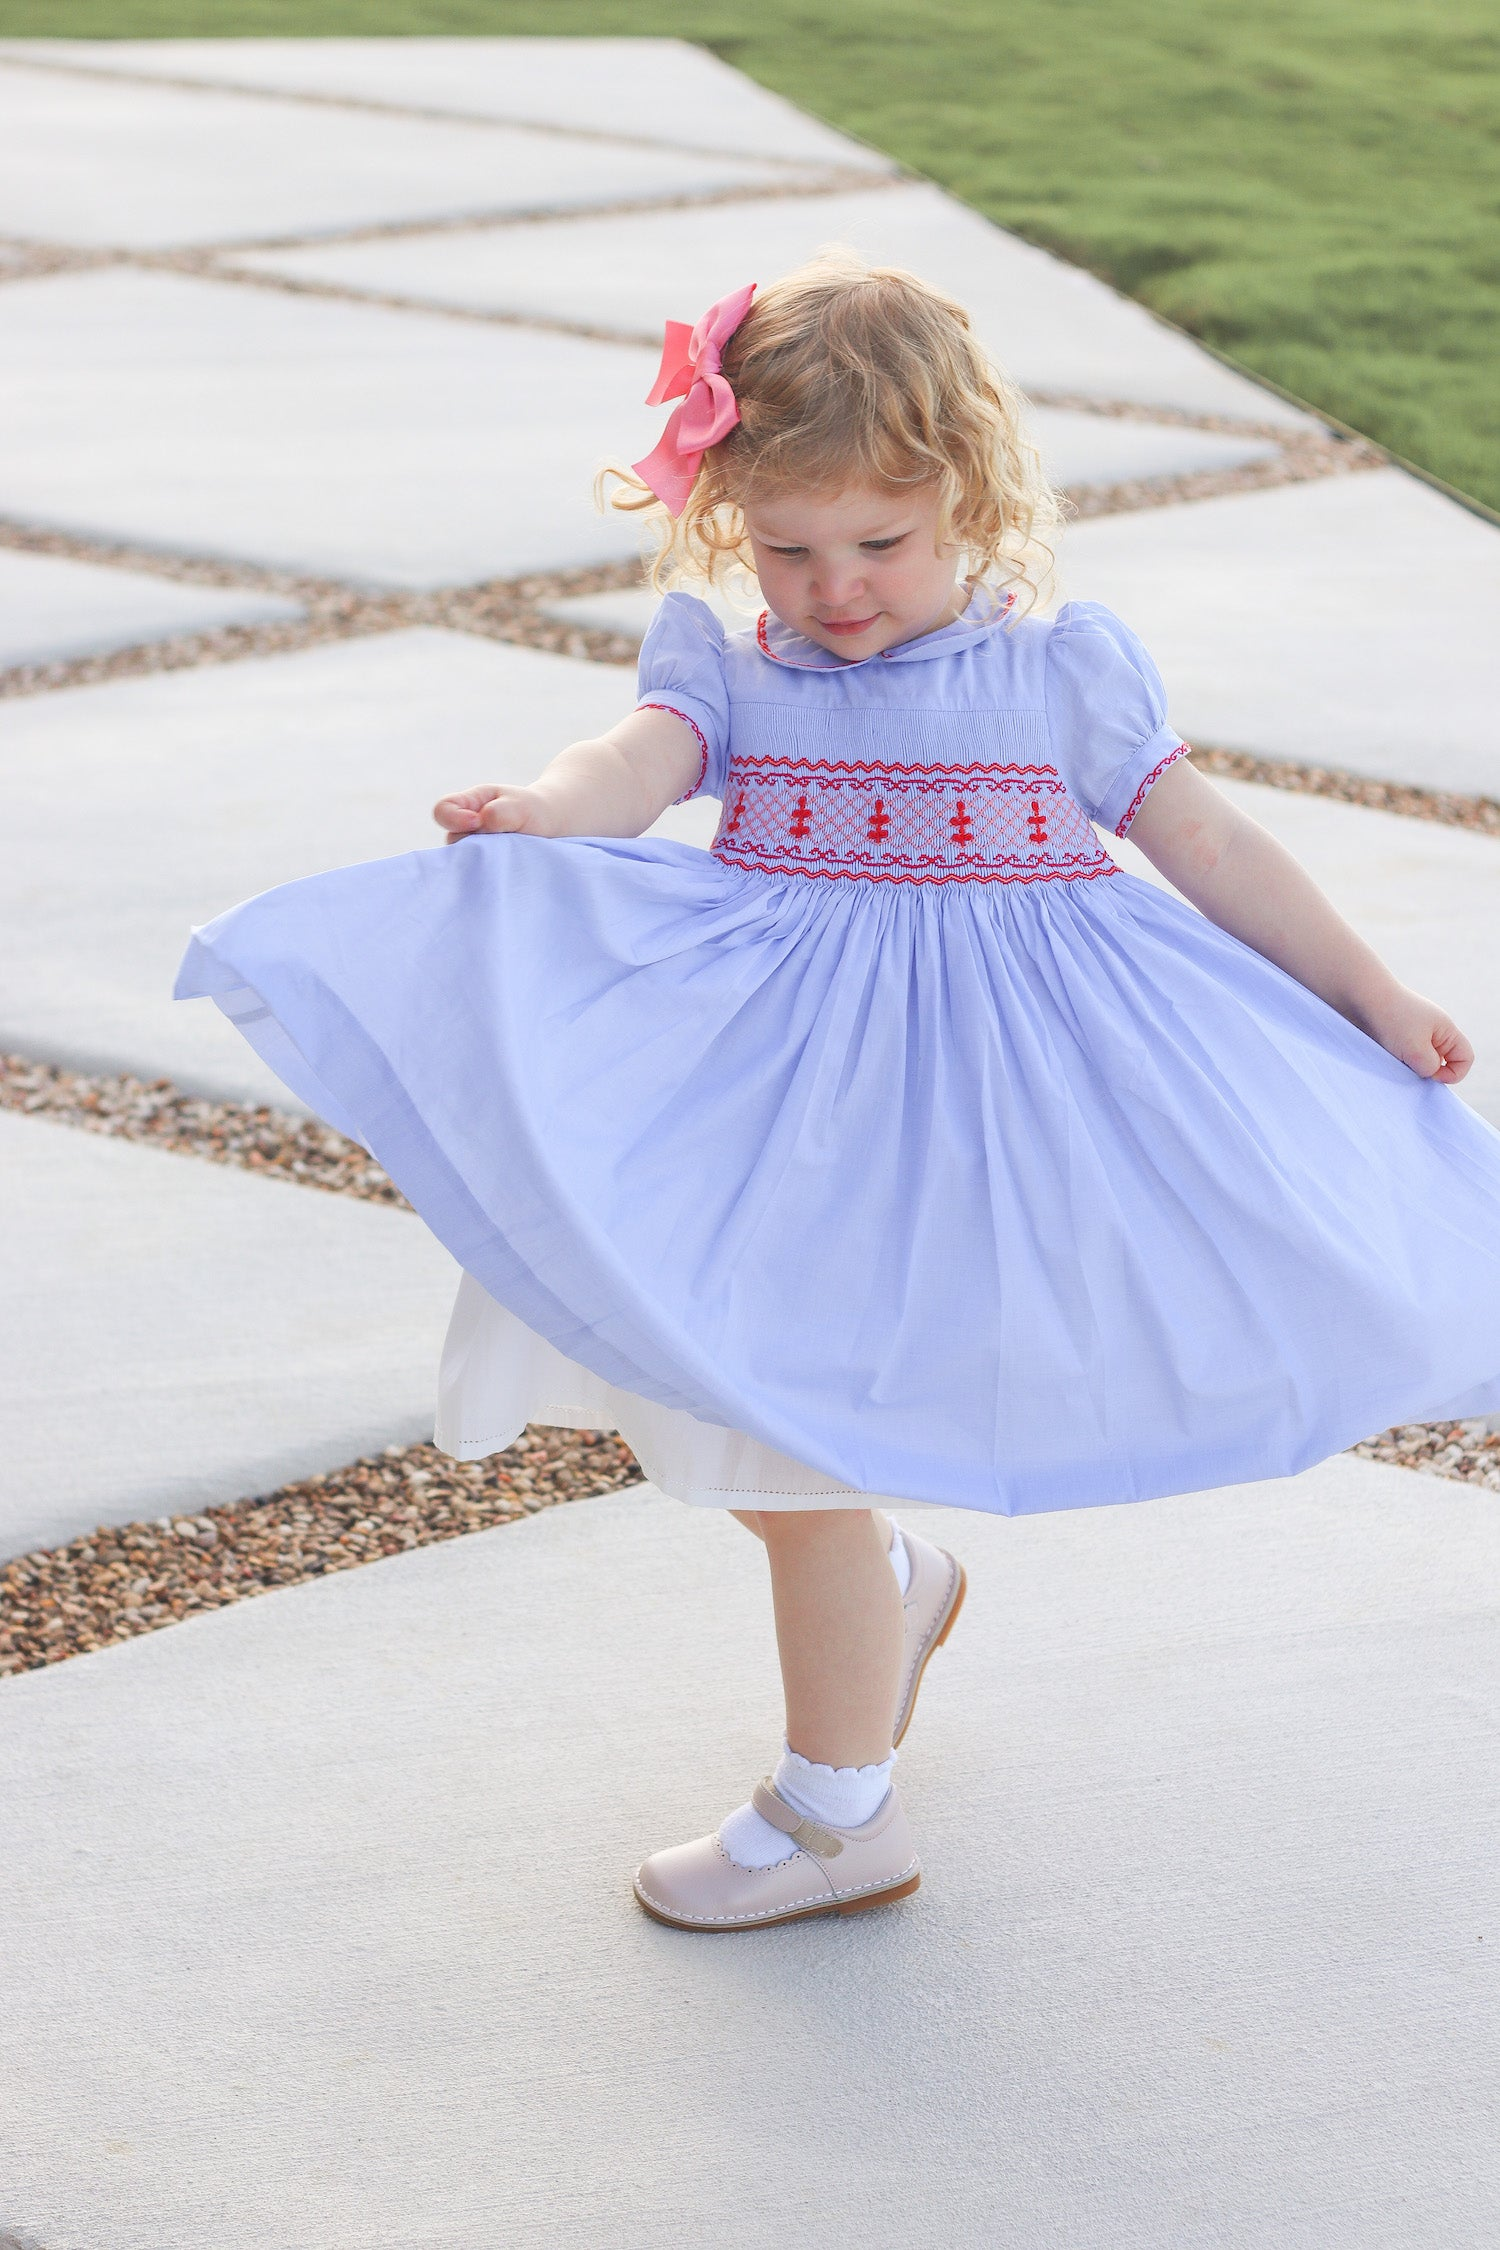 Classic chic shoes for children